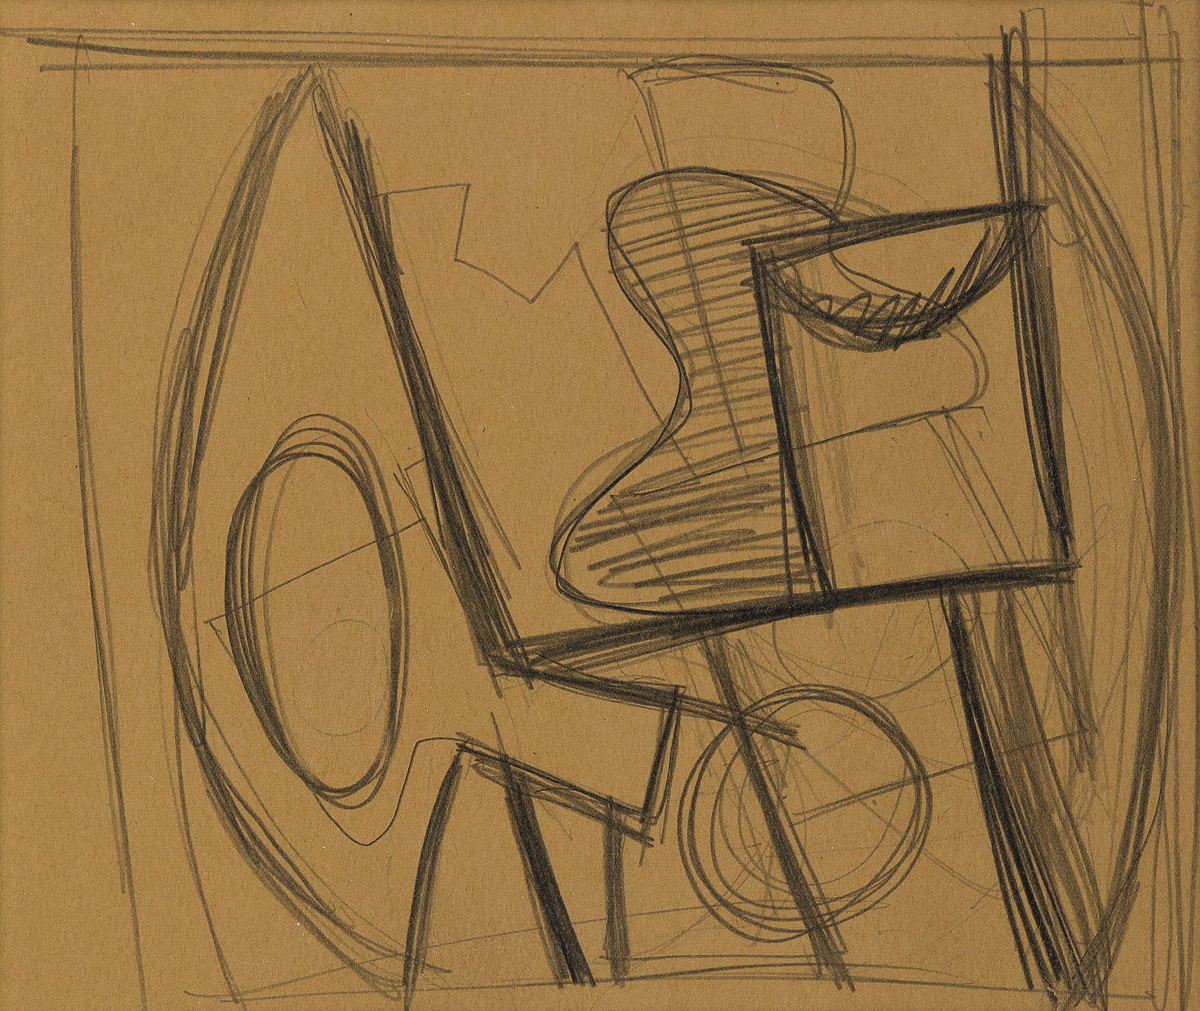 ARSHILE-GORKY-Abstract-Still-Life